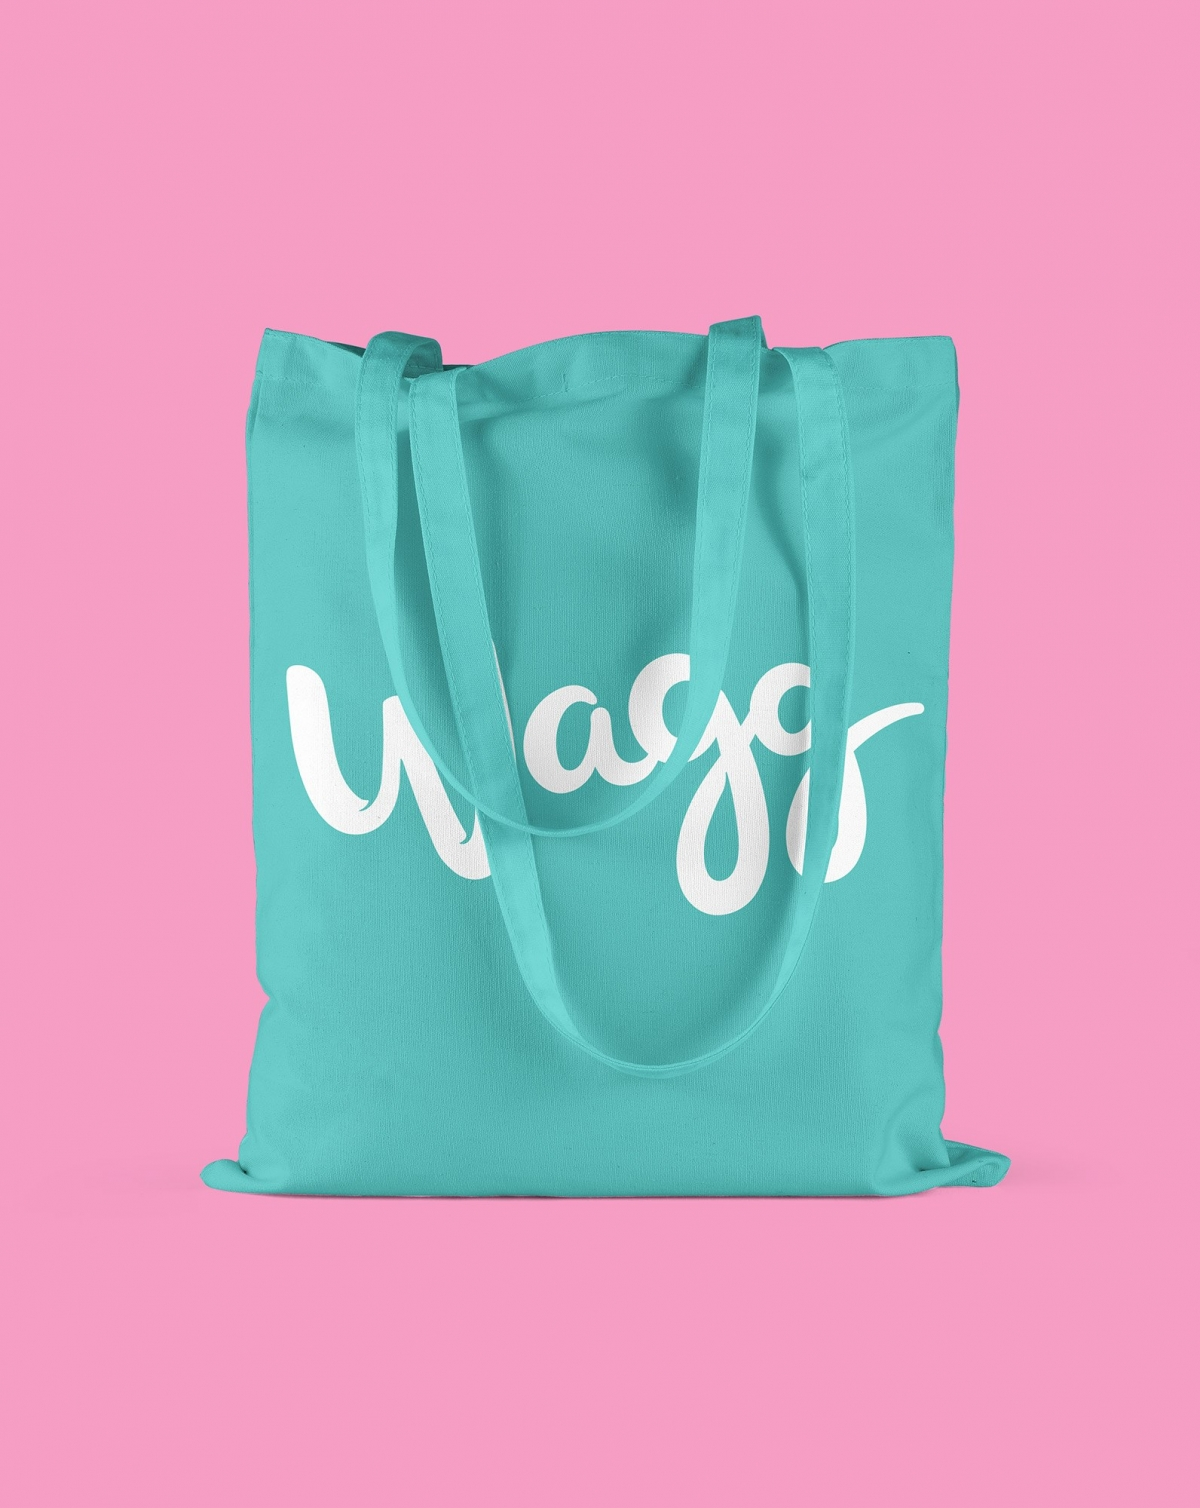 17 Wagg Tote Bag